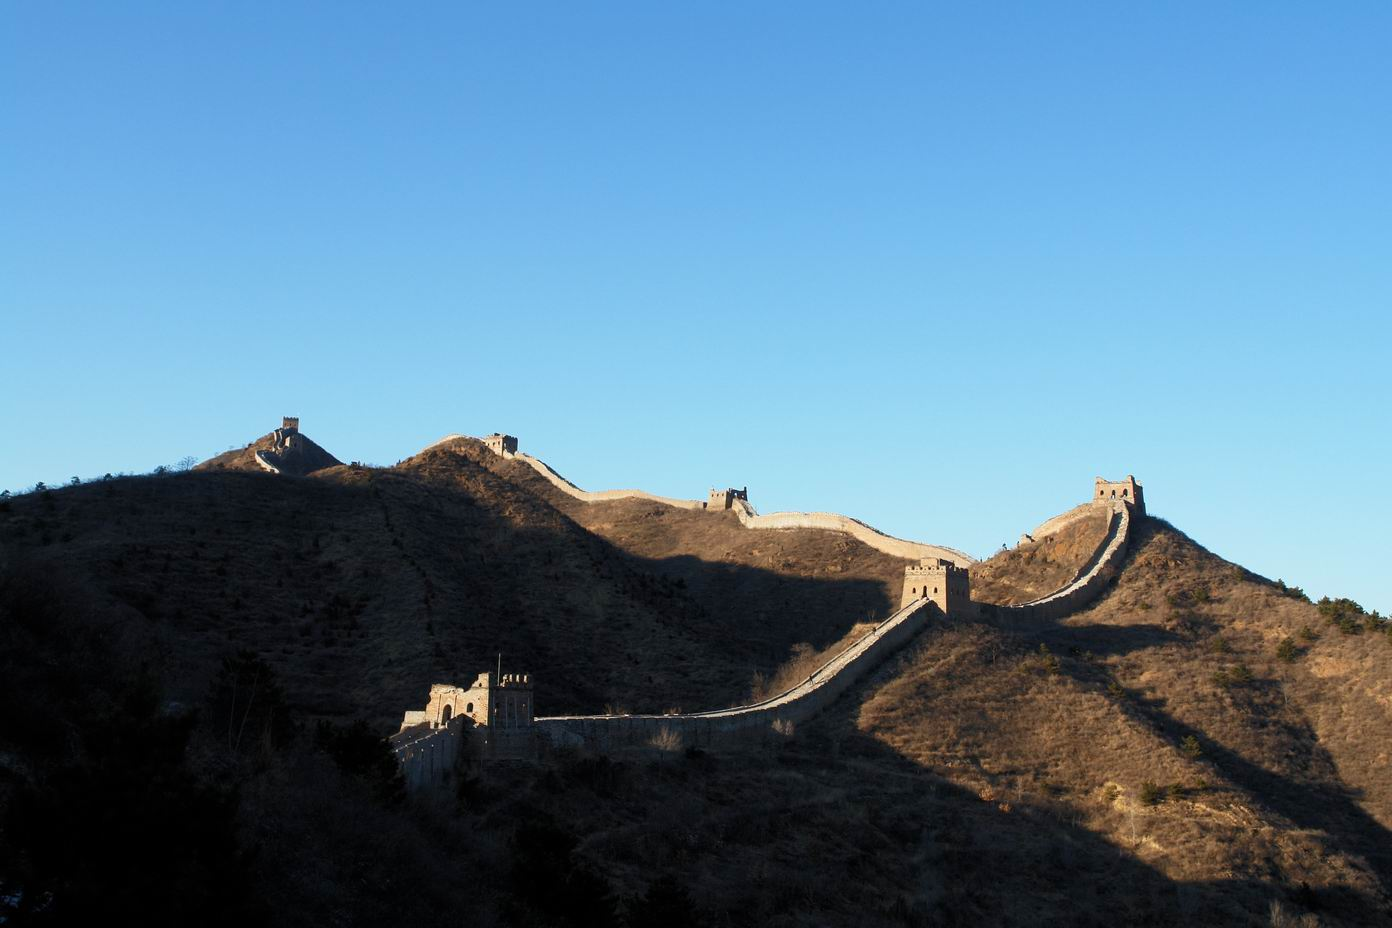 Jinshanling Great Wall Under the Rising Sun